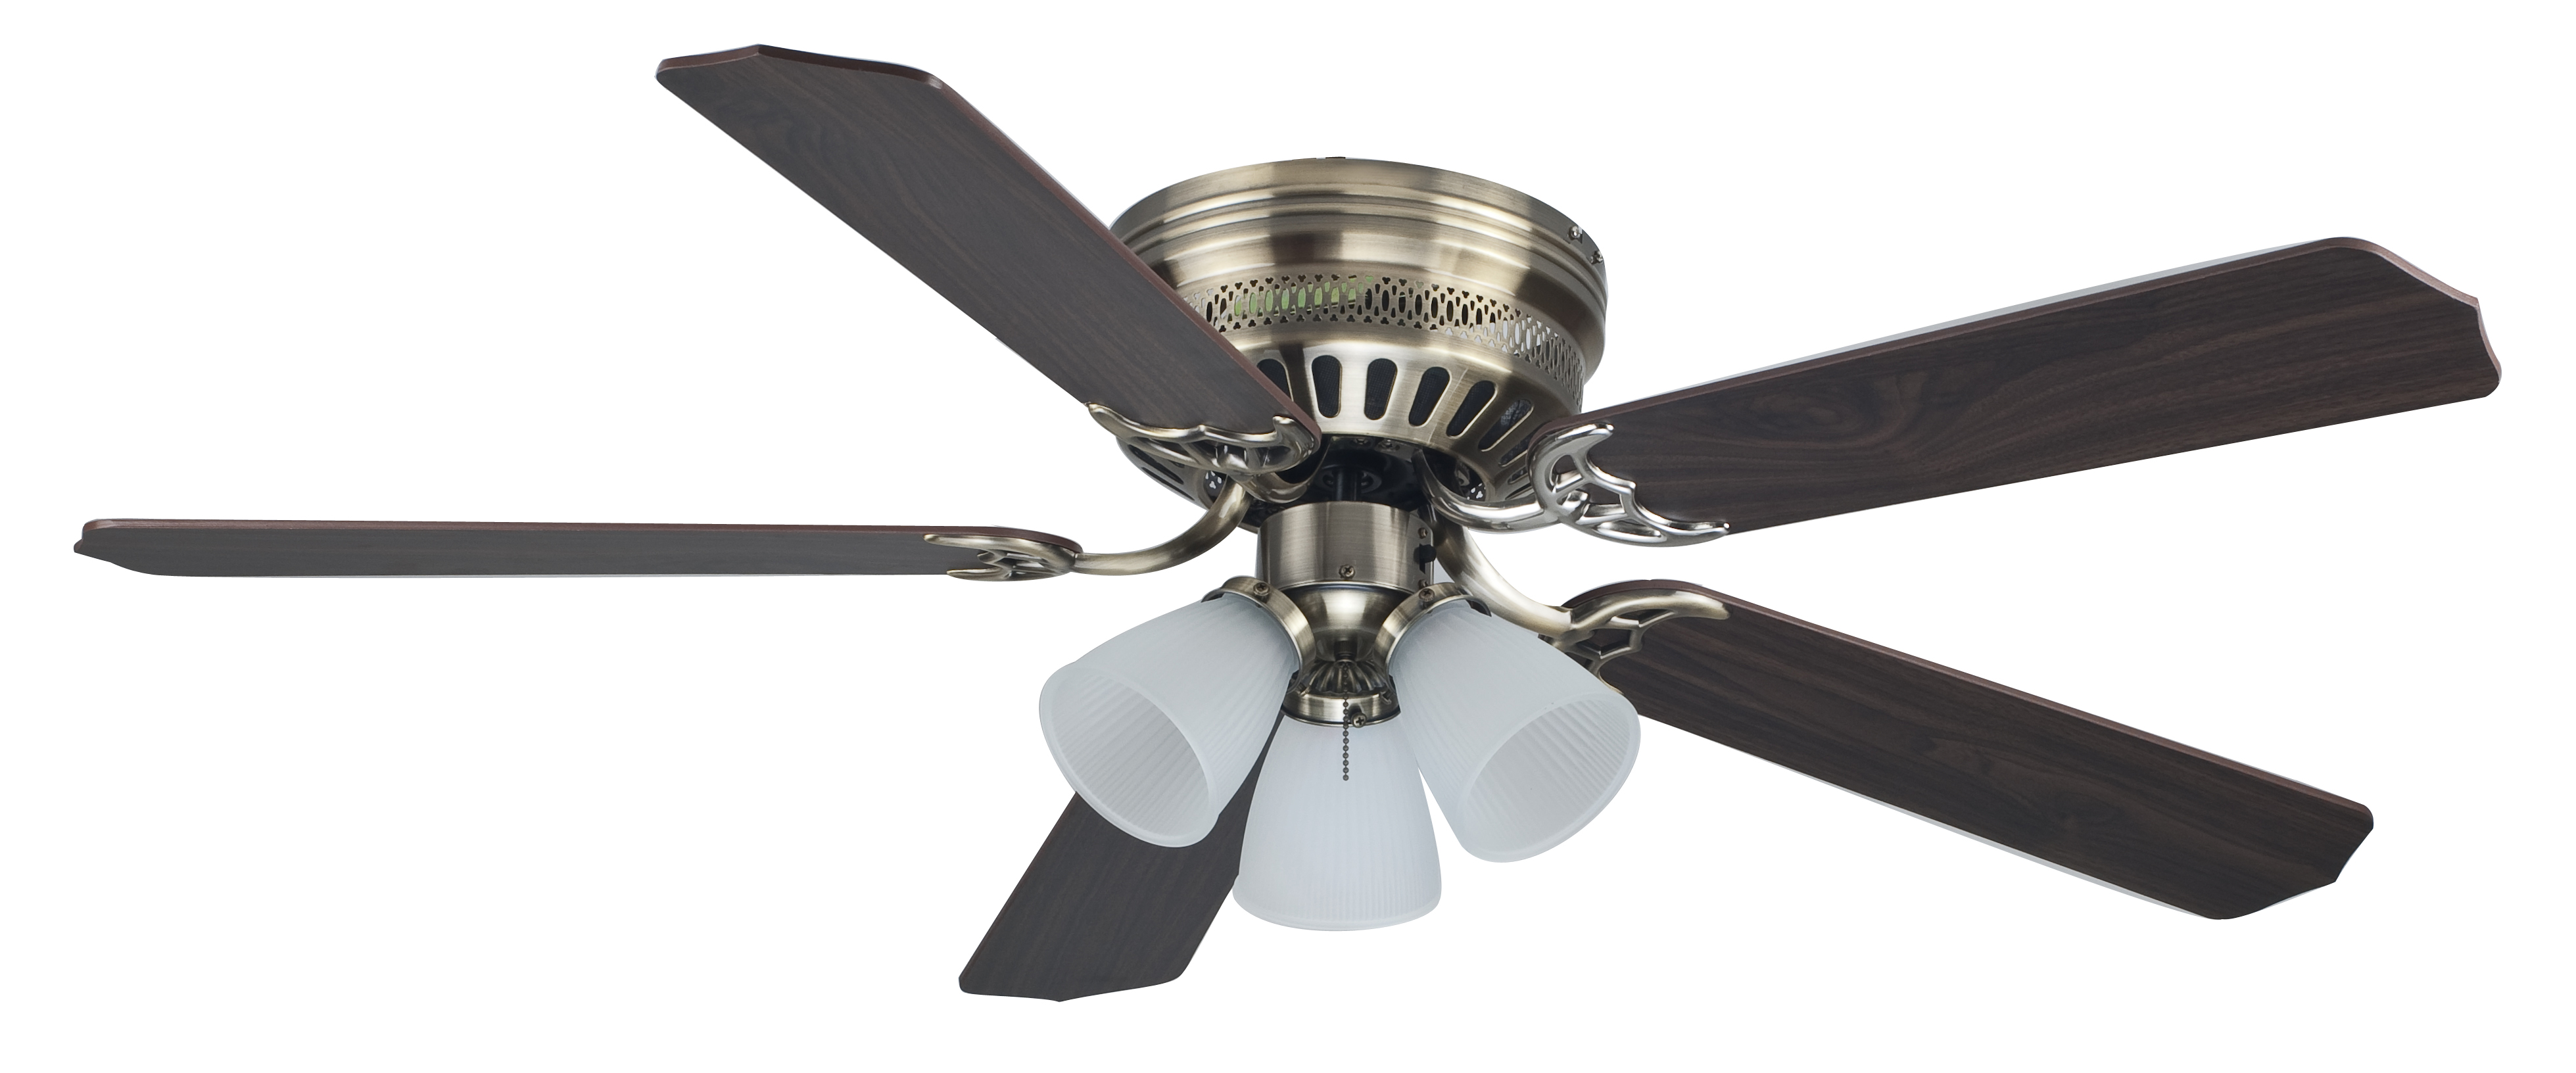 Cool Ceiling Fans For Sale Cool Breeze Eb52041 52in Bronze Ceiling Fan